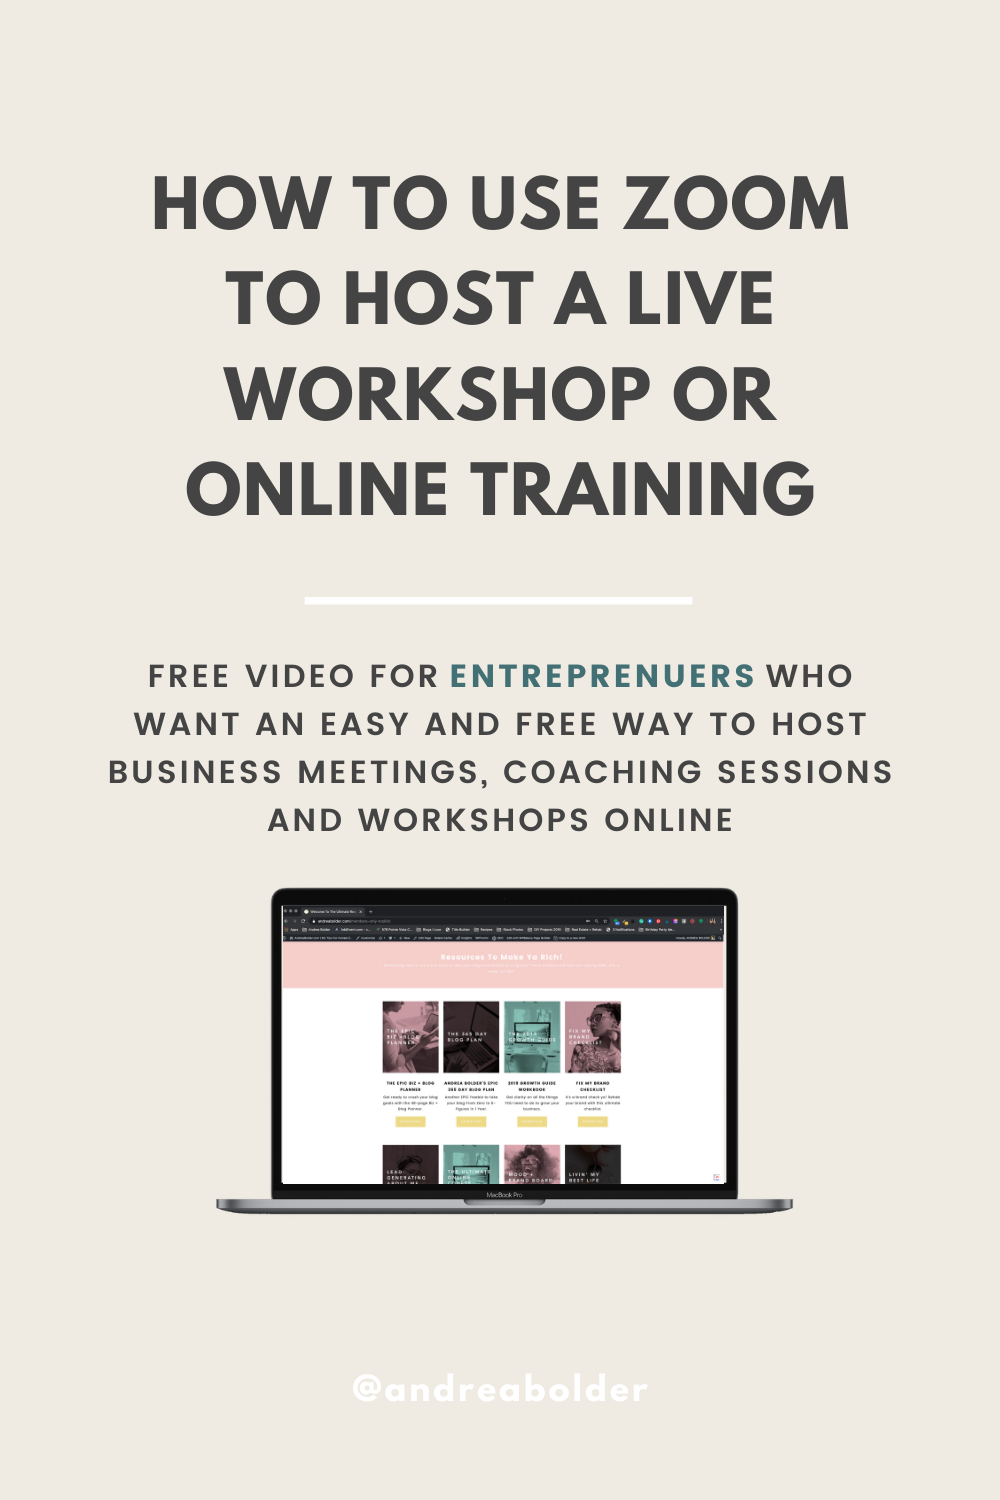 How To Host a Live Online Workshop or Coaching Call with Zoom